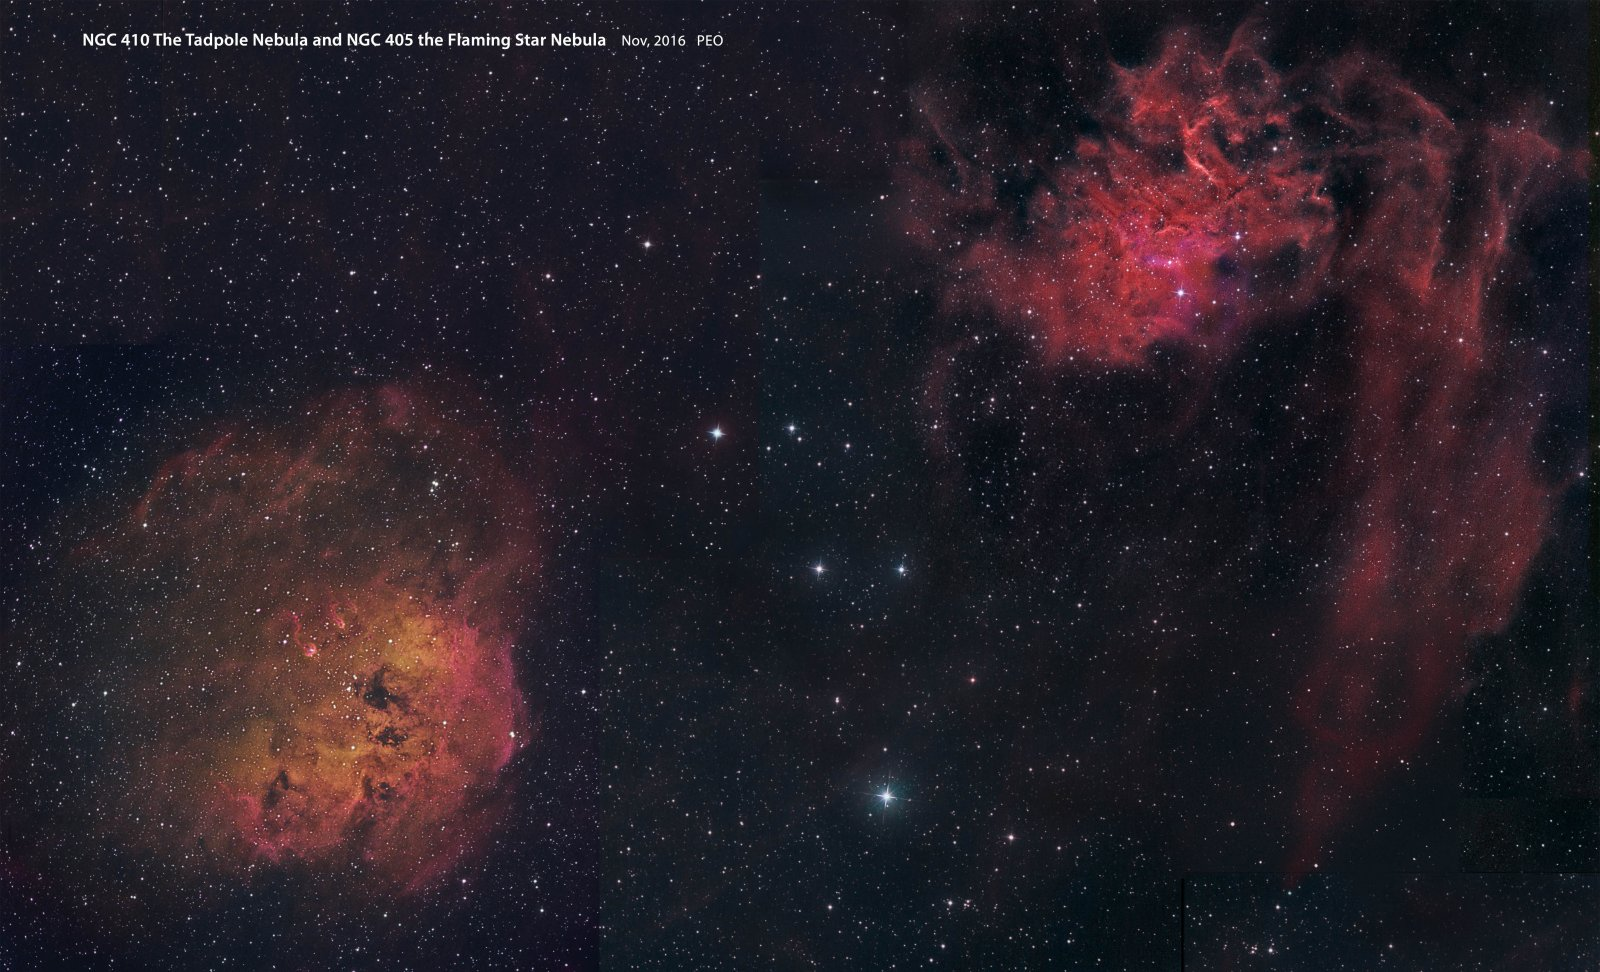 Tadpole and Flaming Star Nebulae